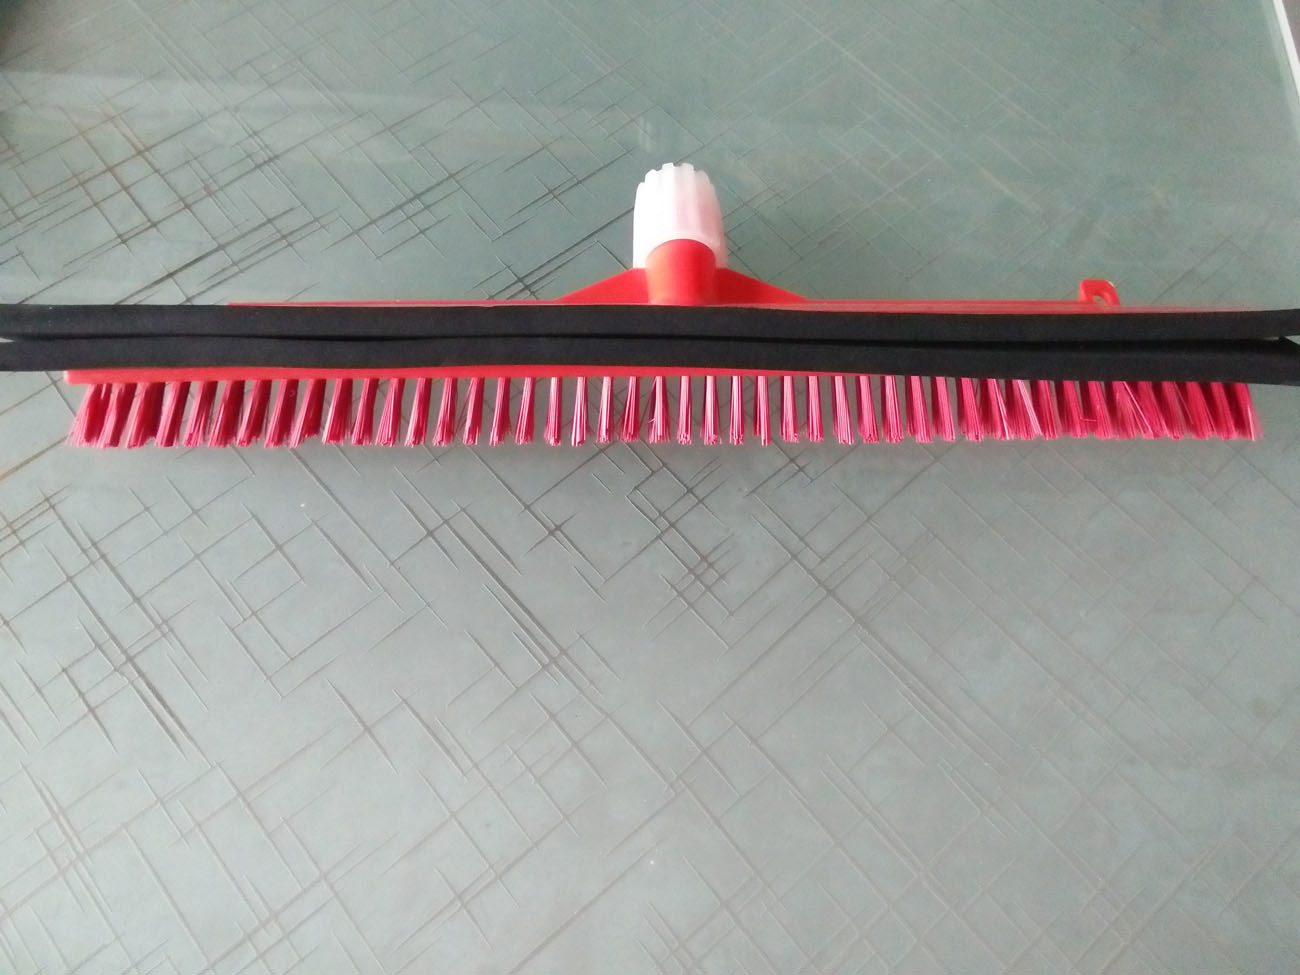 Plastic Broom Foldable Floor Broom with Squeegee